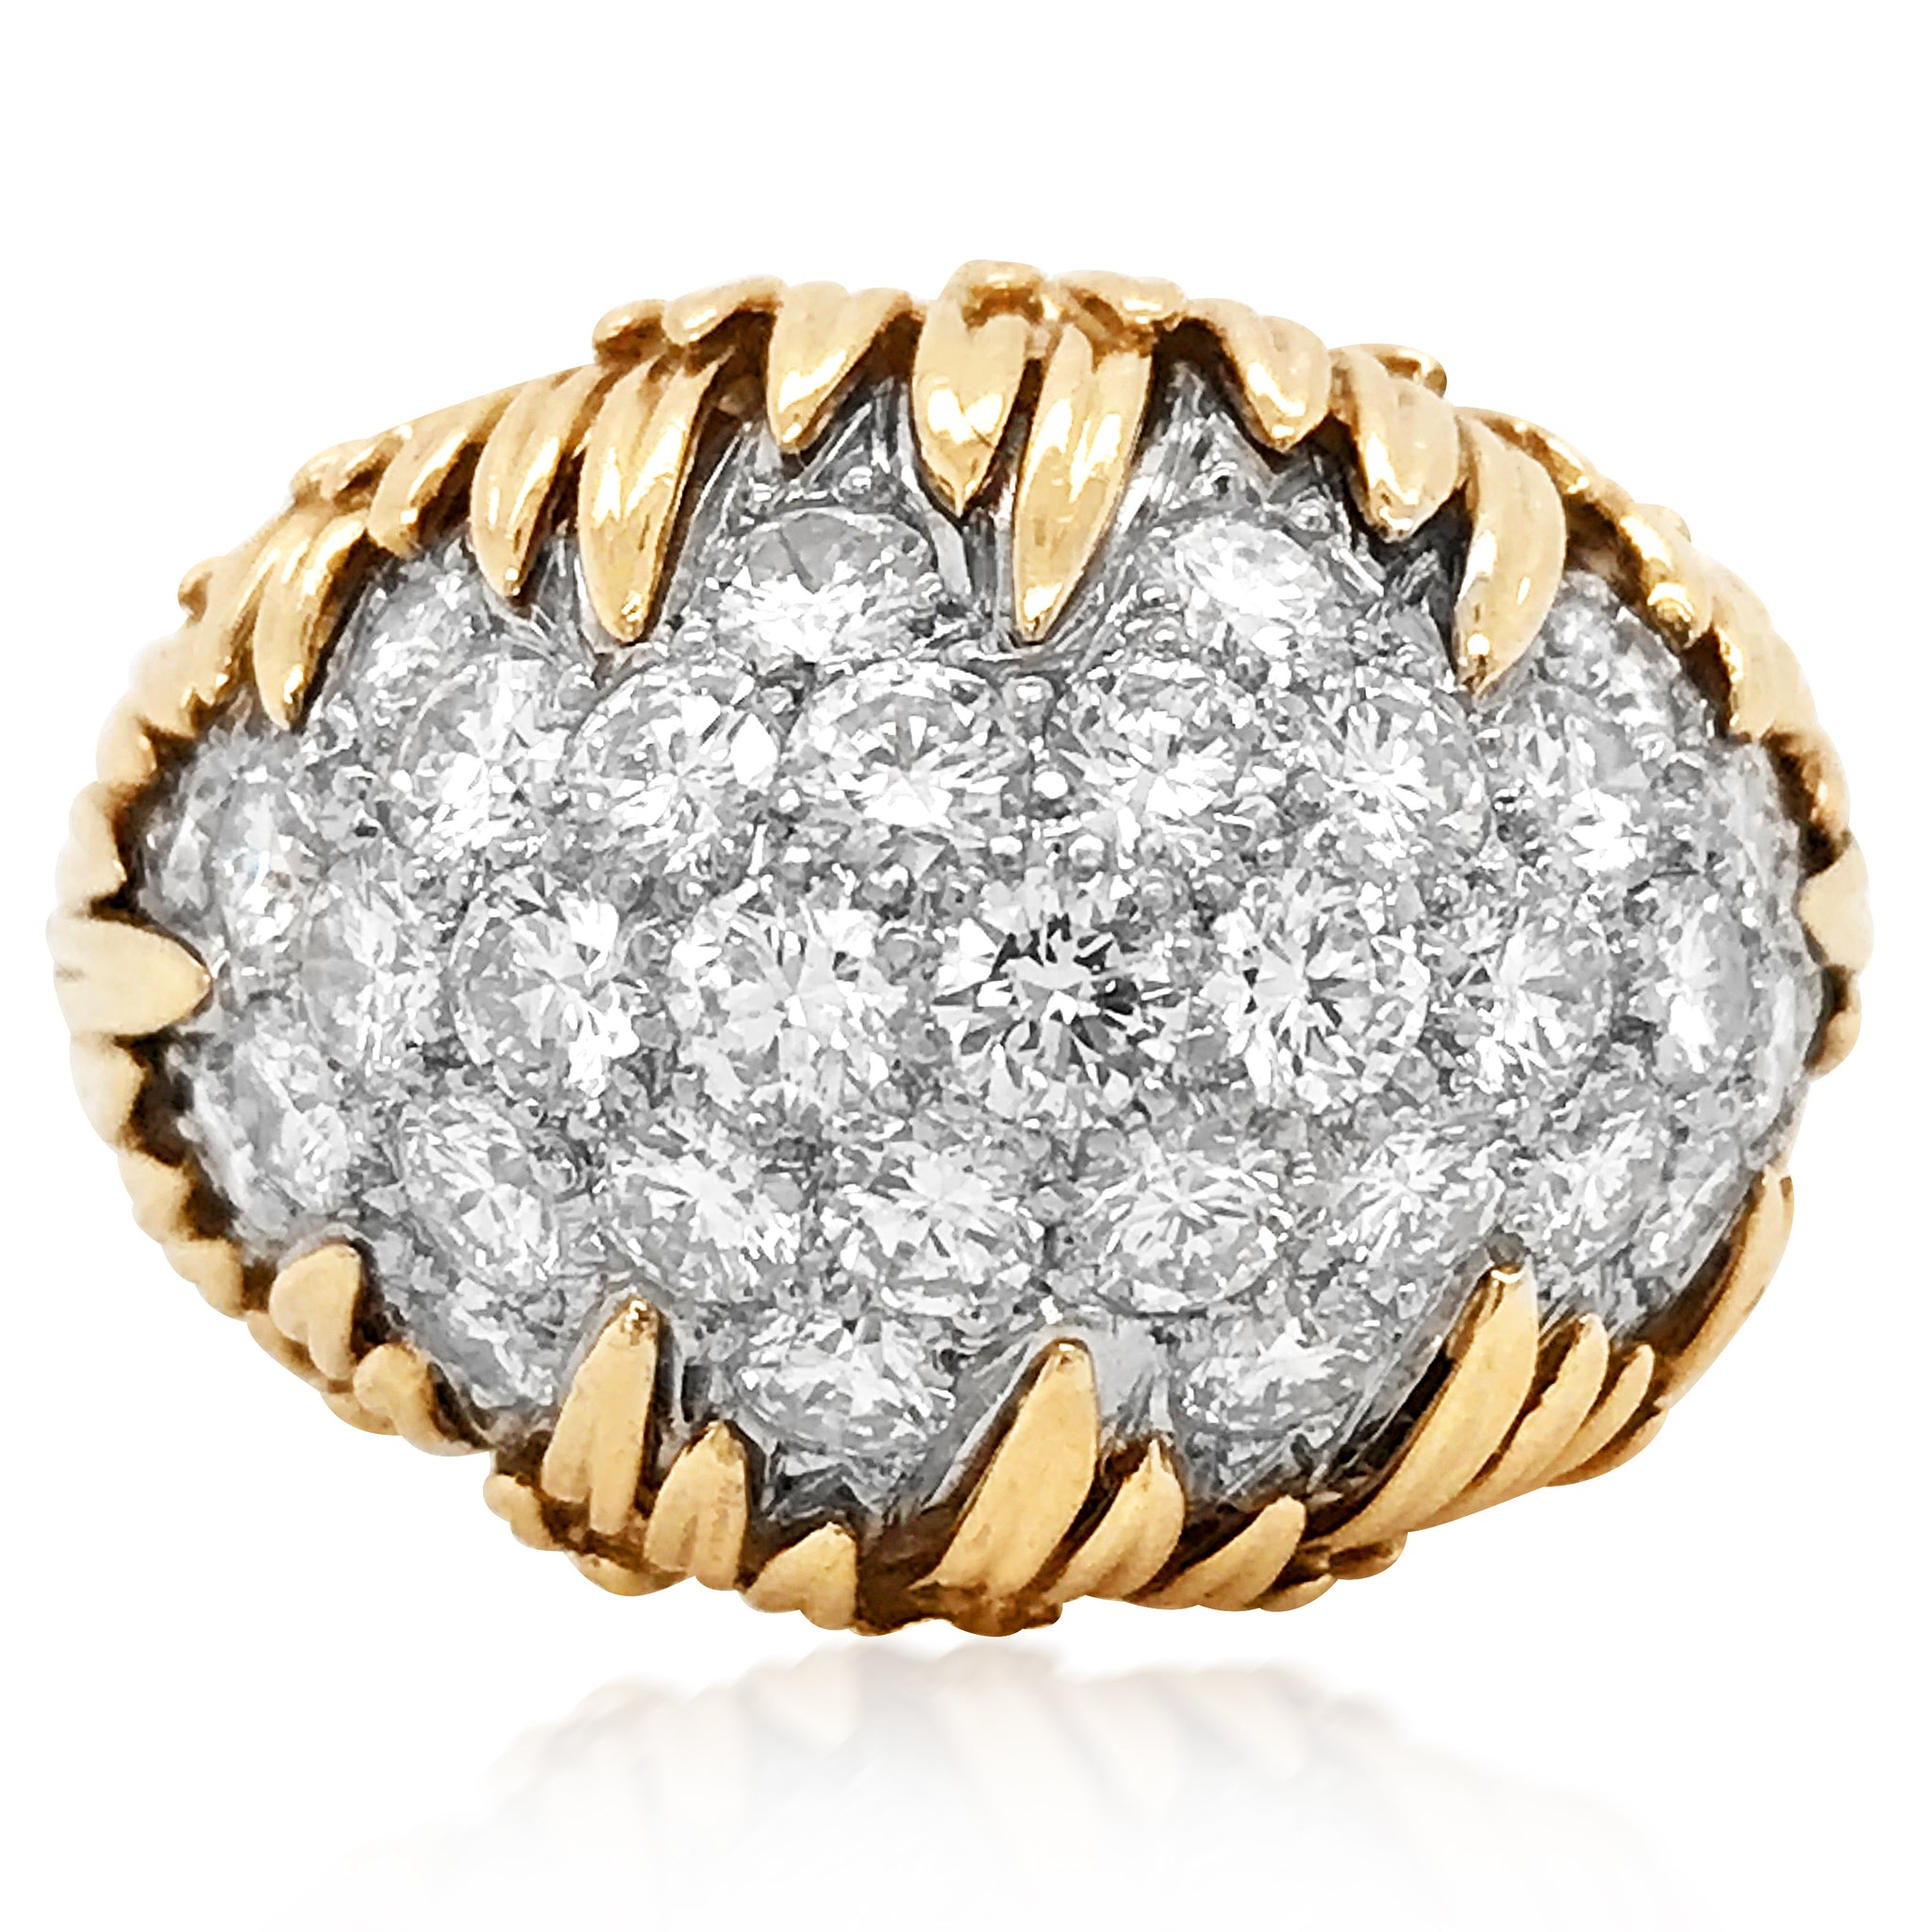 Cartier, 18K Gold Diamond Ring - Lueur Jewelry